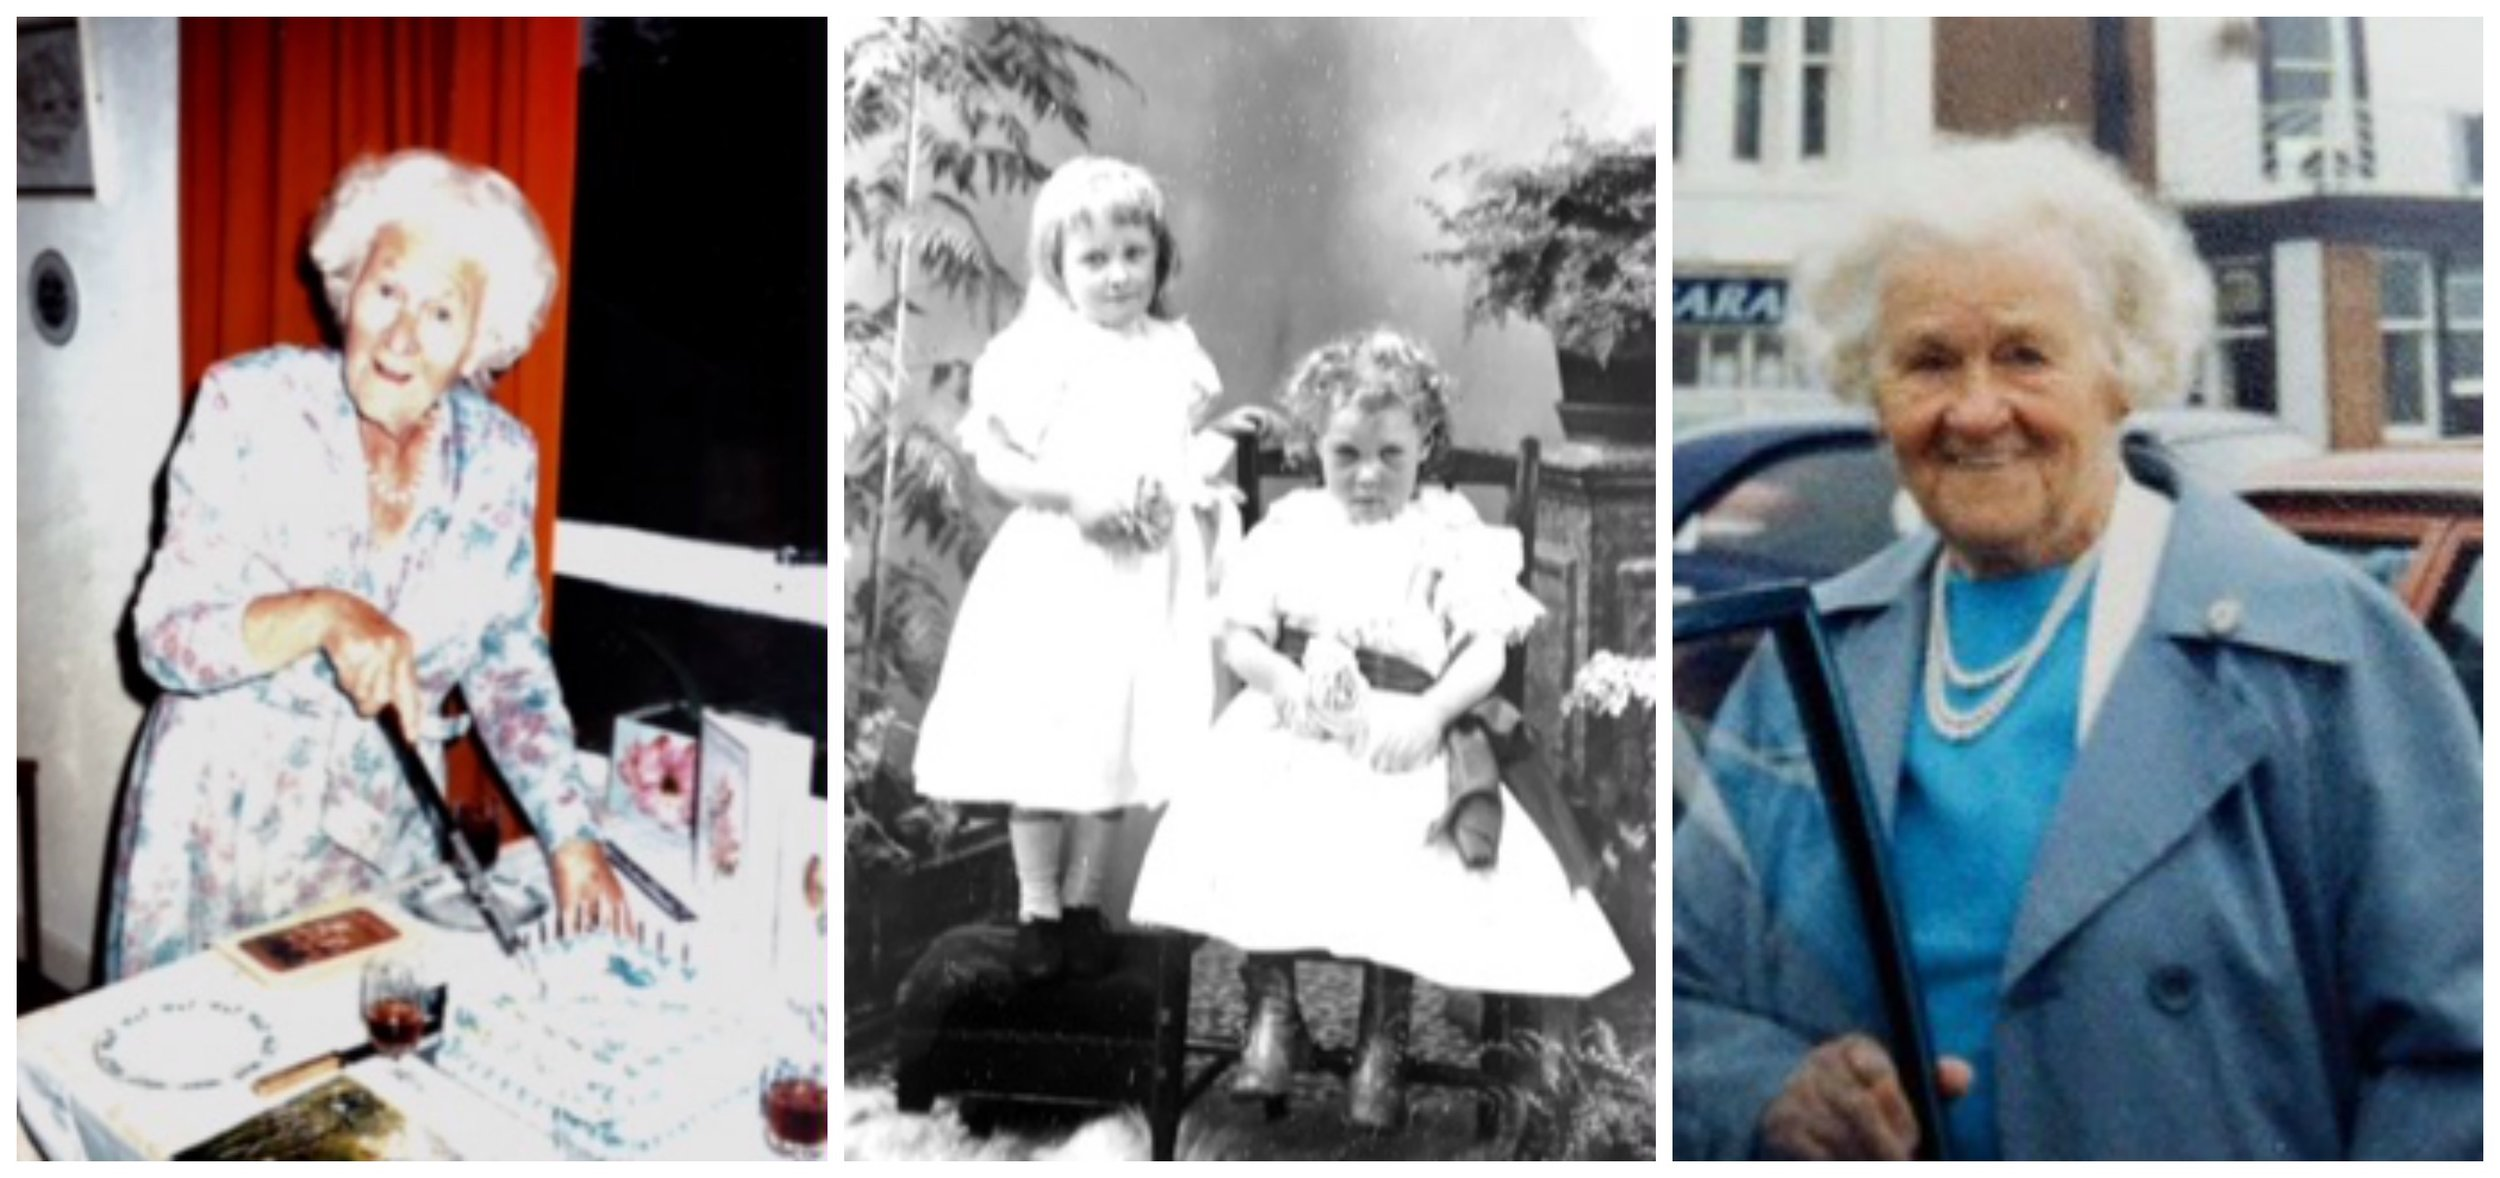 Sarah across the years, with little sister Lizzie in the centre.